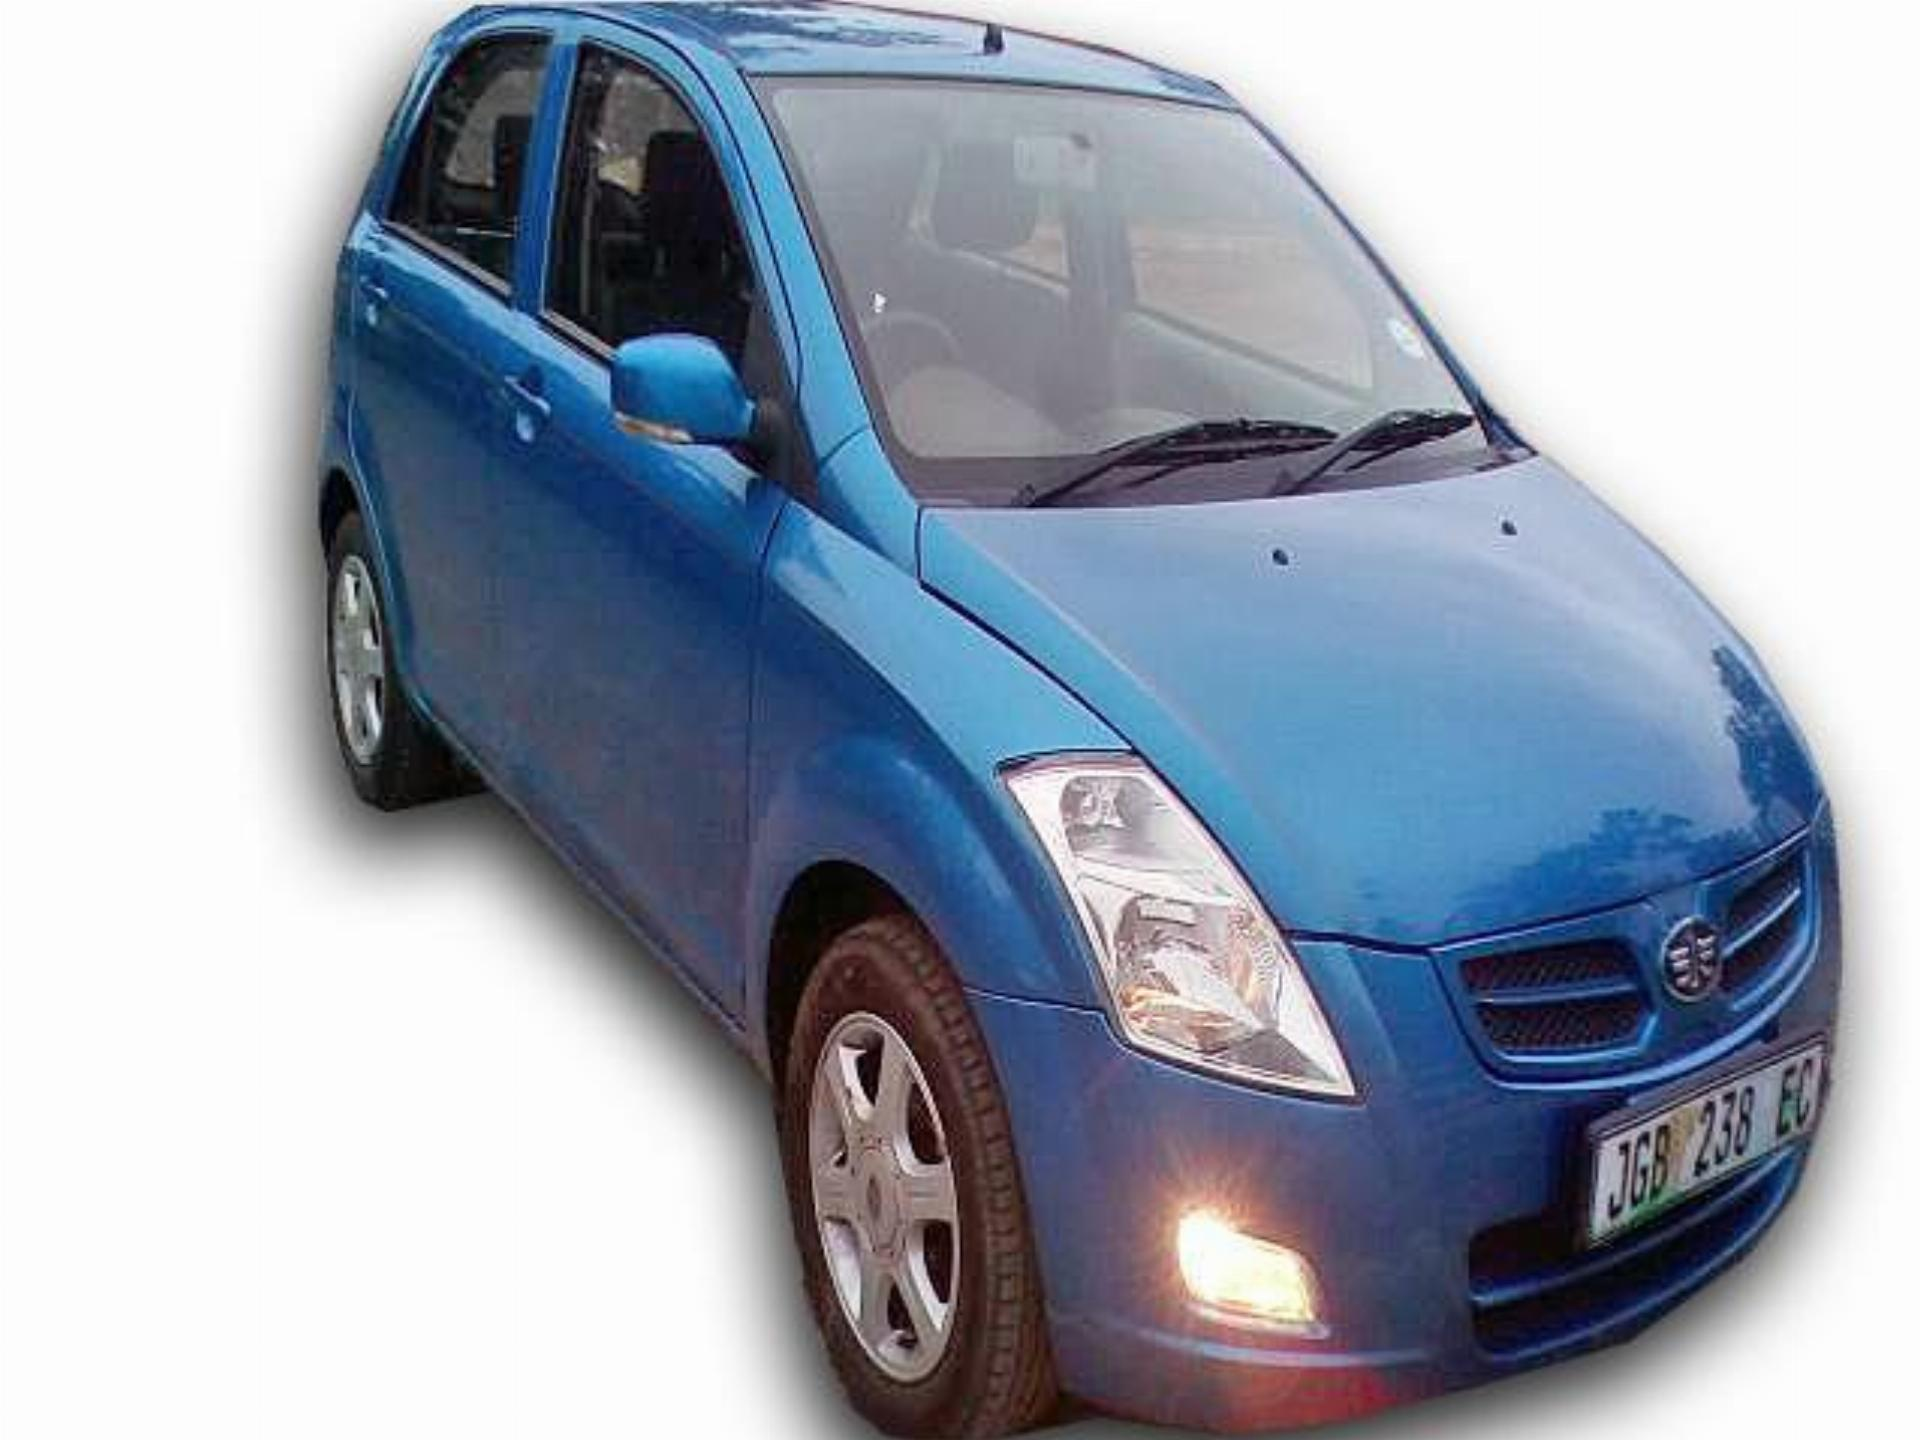 FAW V2 1.3 DLX 5 Door Metalic Blue